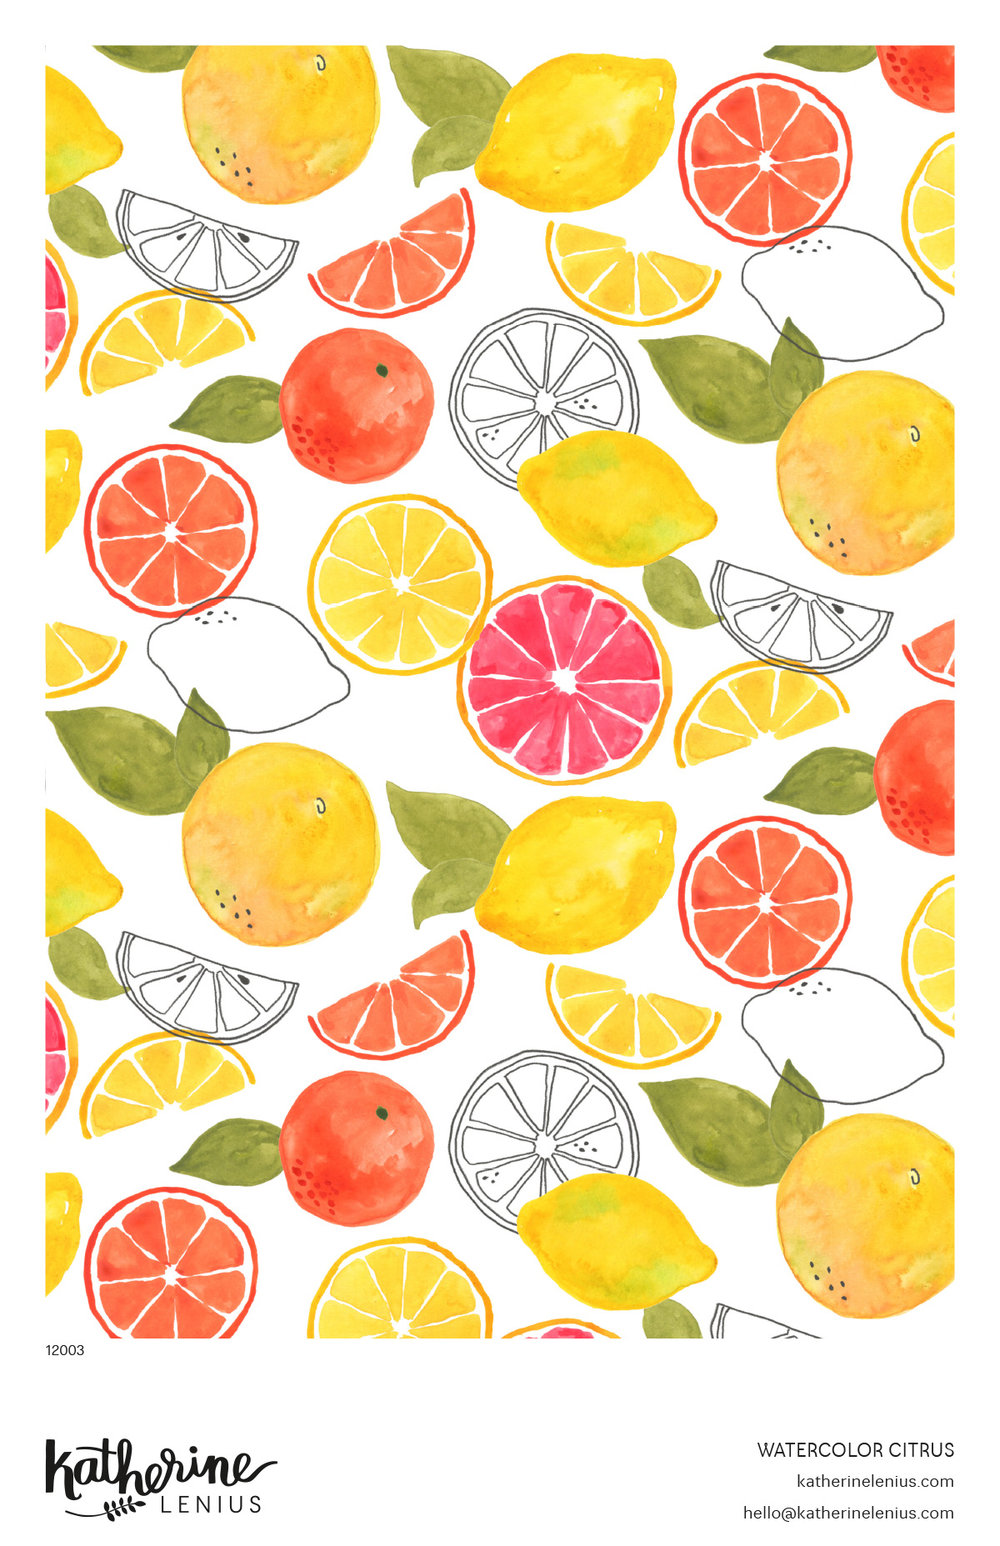 KL_12003_Watercolor Citrus copy.jpg